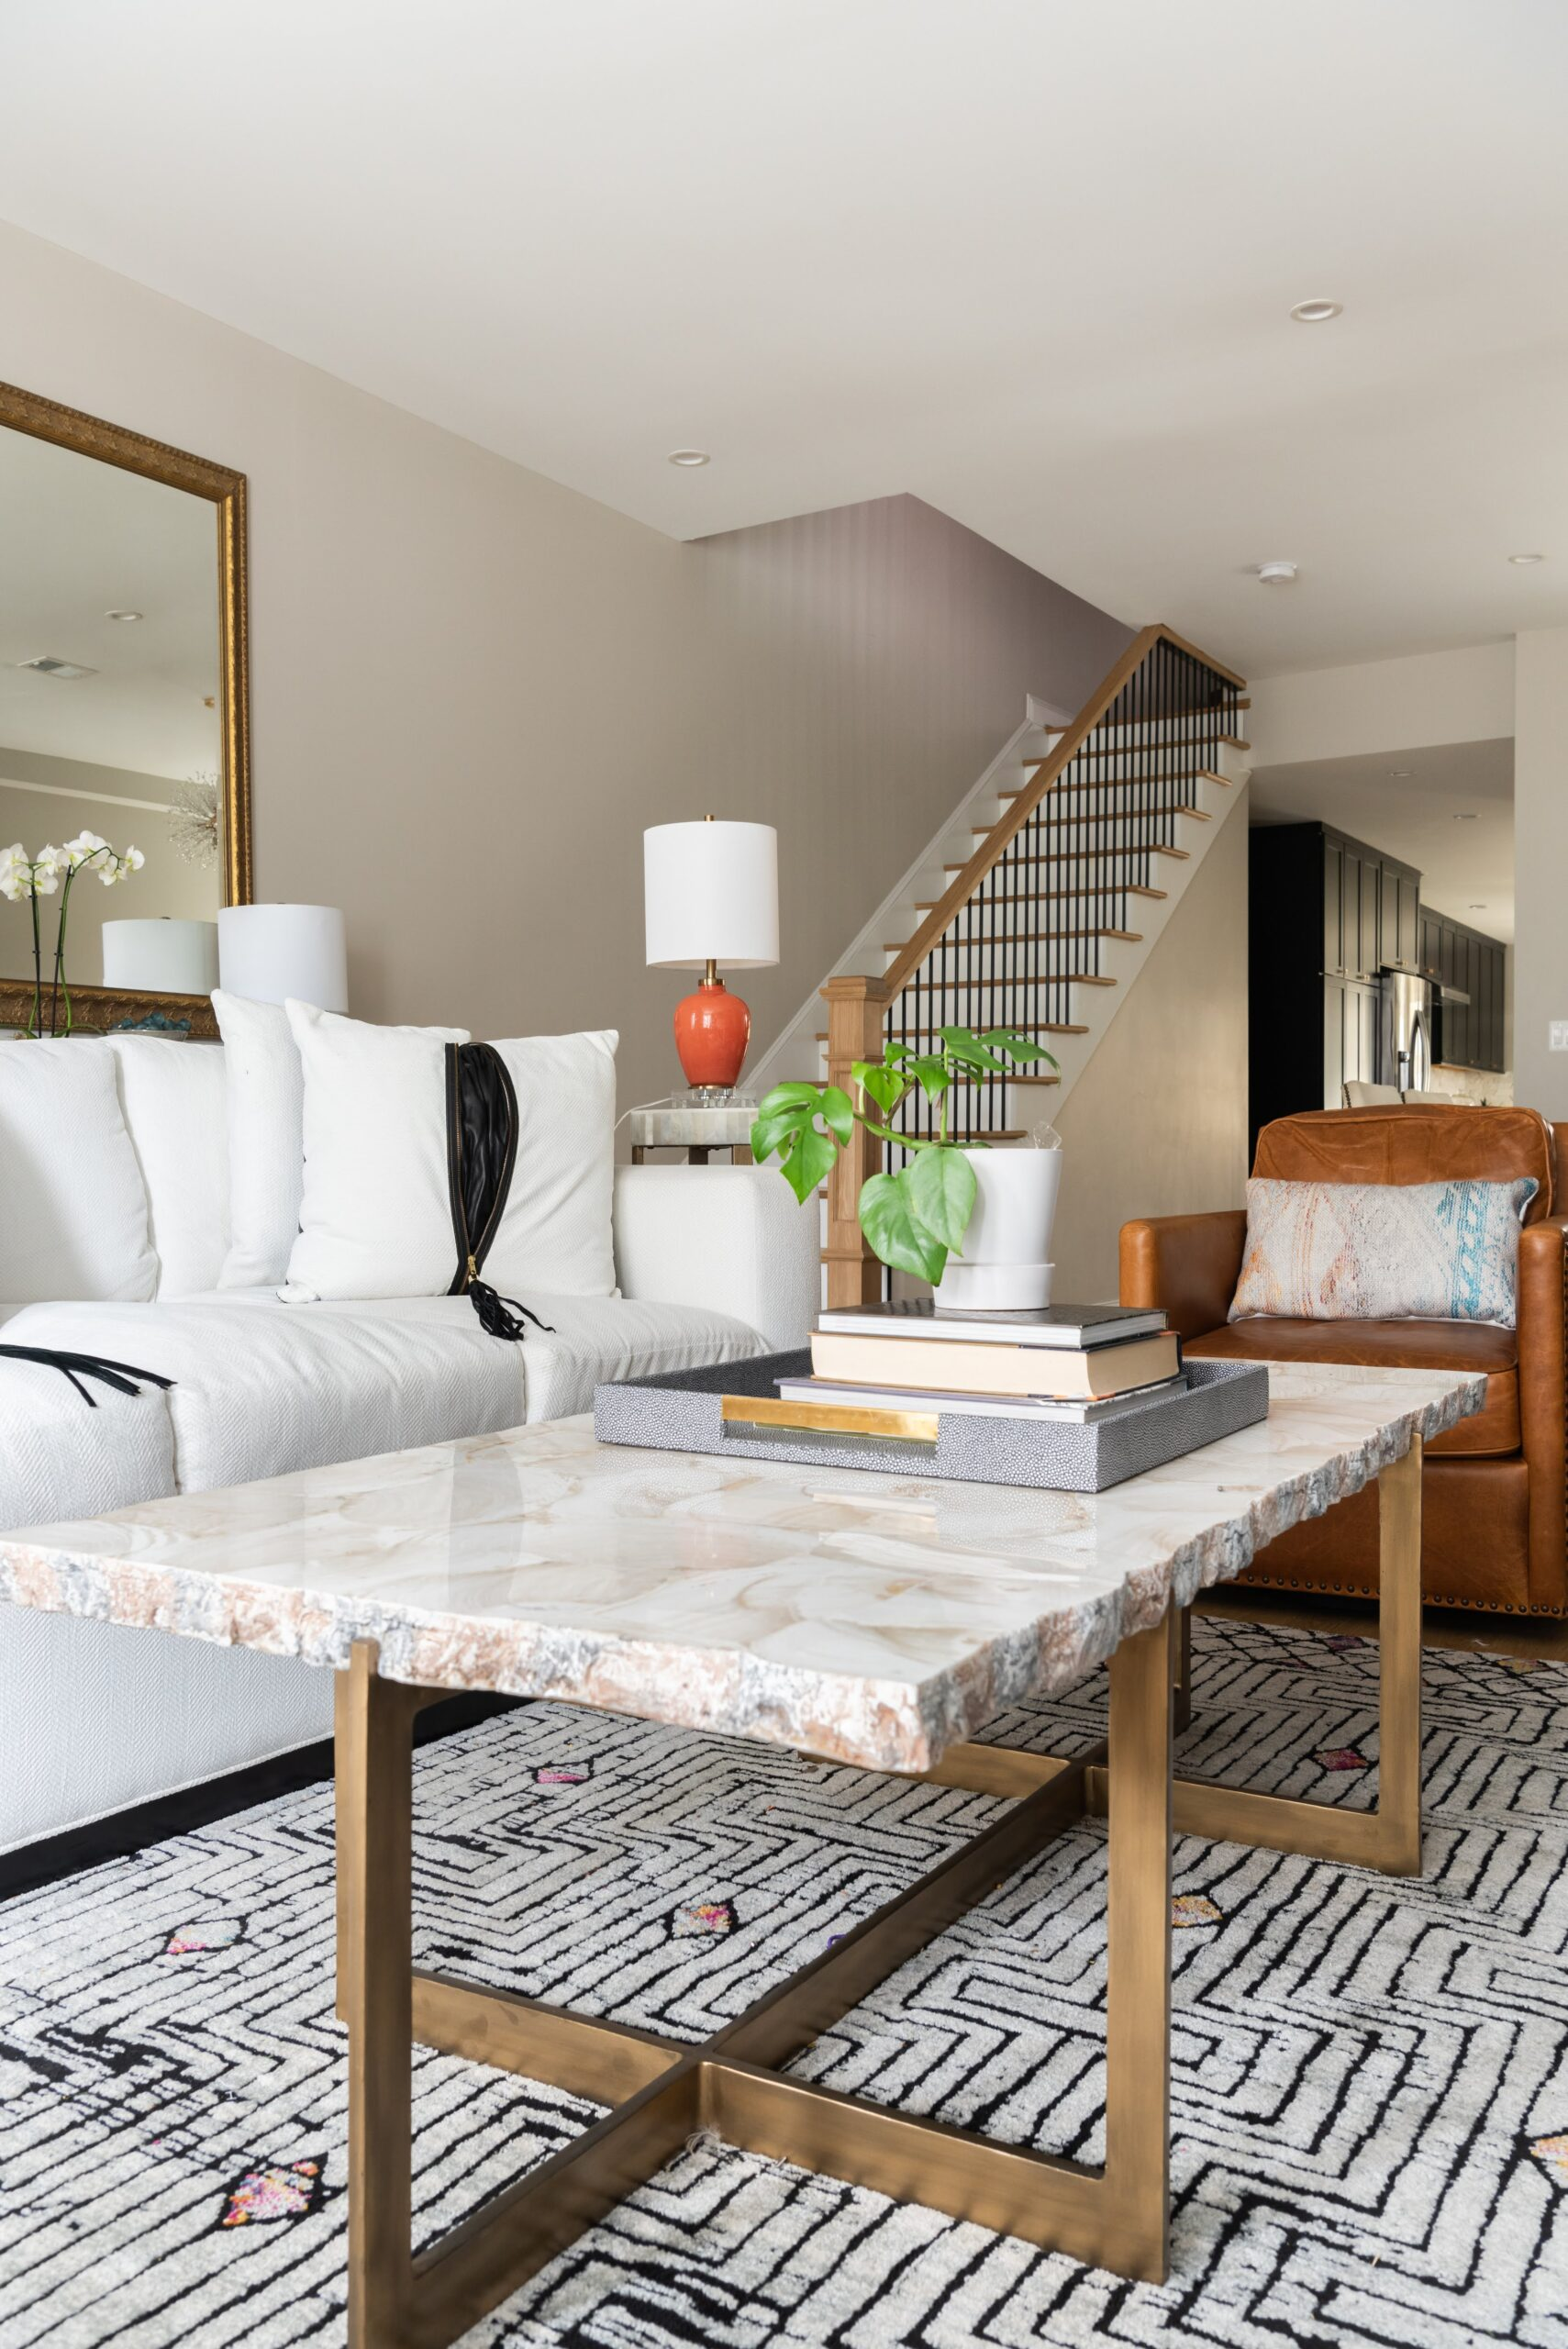 Capitol Hill Rowhouse Living Room, dmv interior designer, dc interior designer, Maryland designer, bowie designer, northern Virginia designer, #bebold